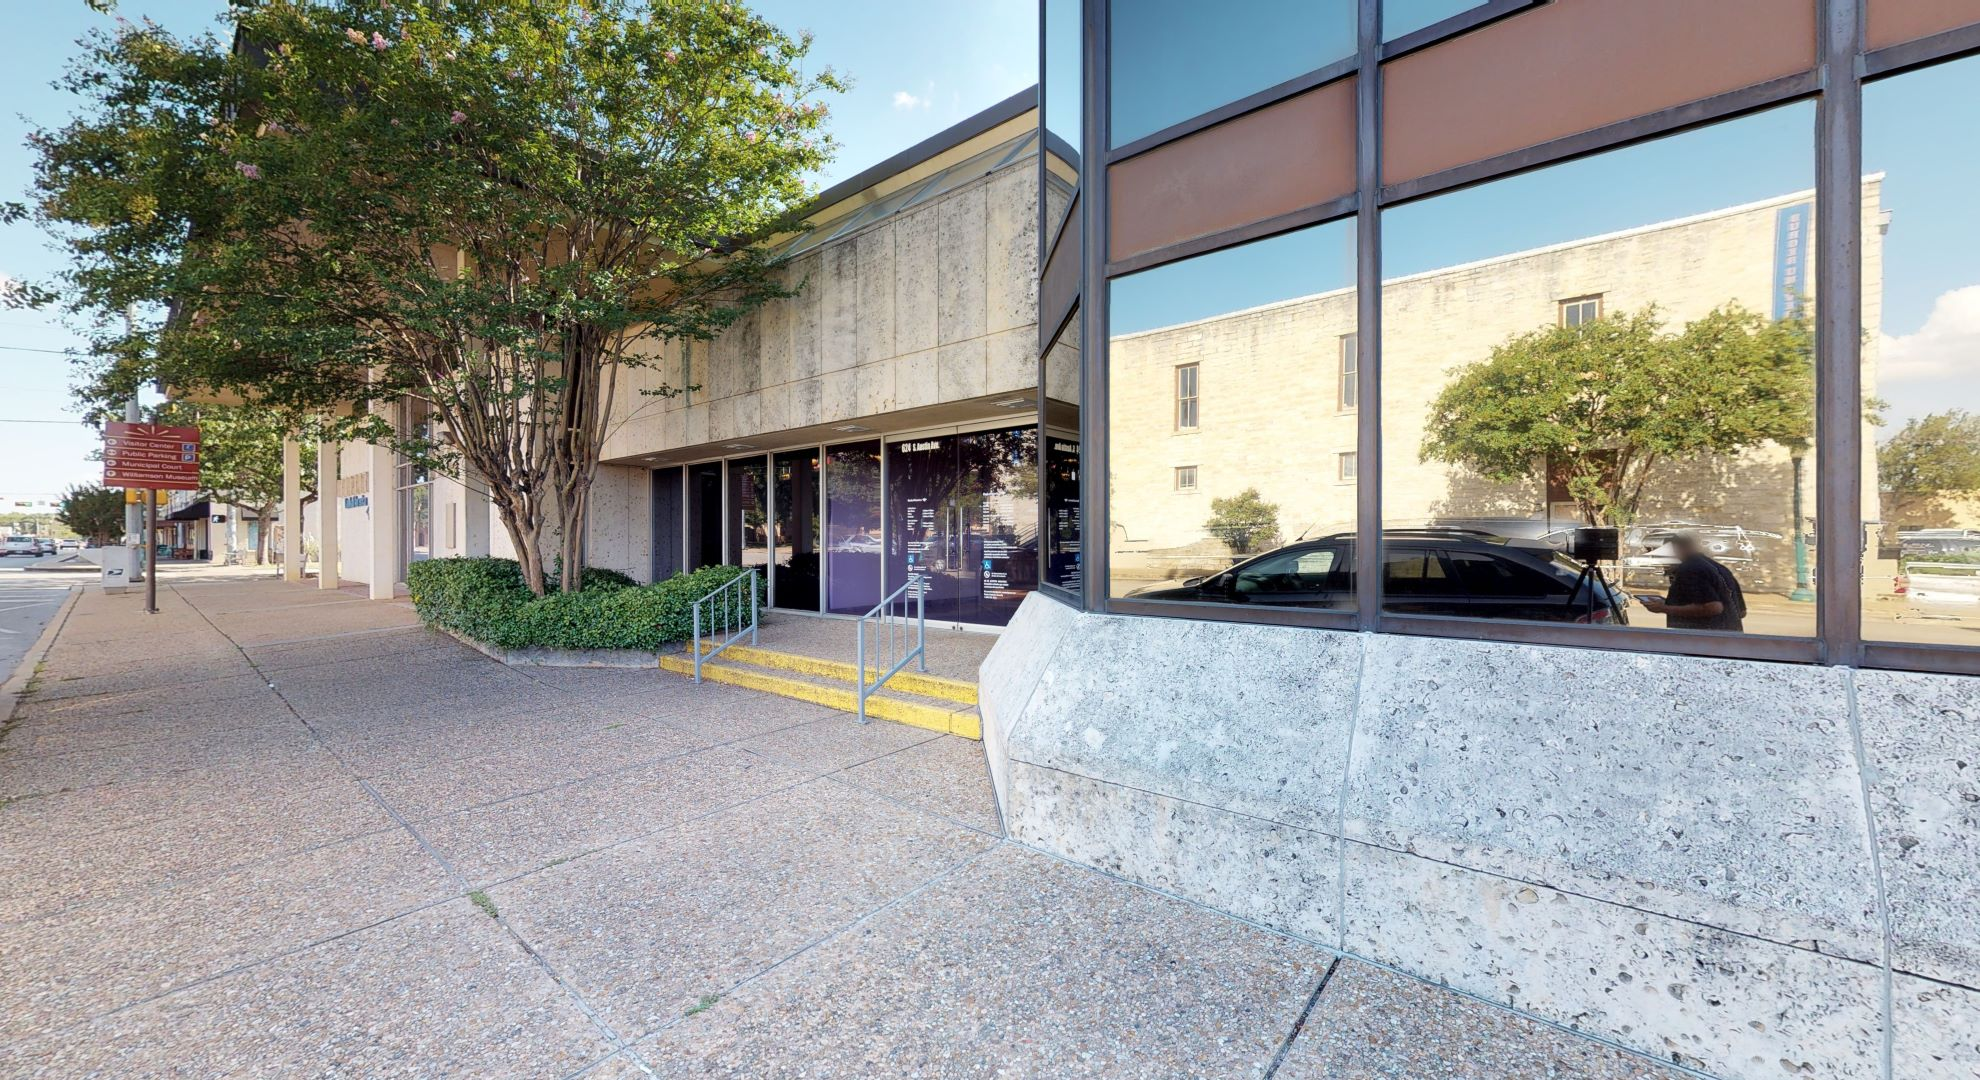 Bank of America financial center with walk-up ATM | 624 S Austin Ave, Georgetown, TX 78626